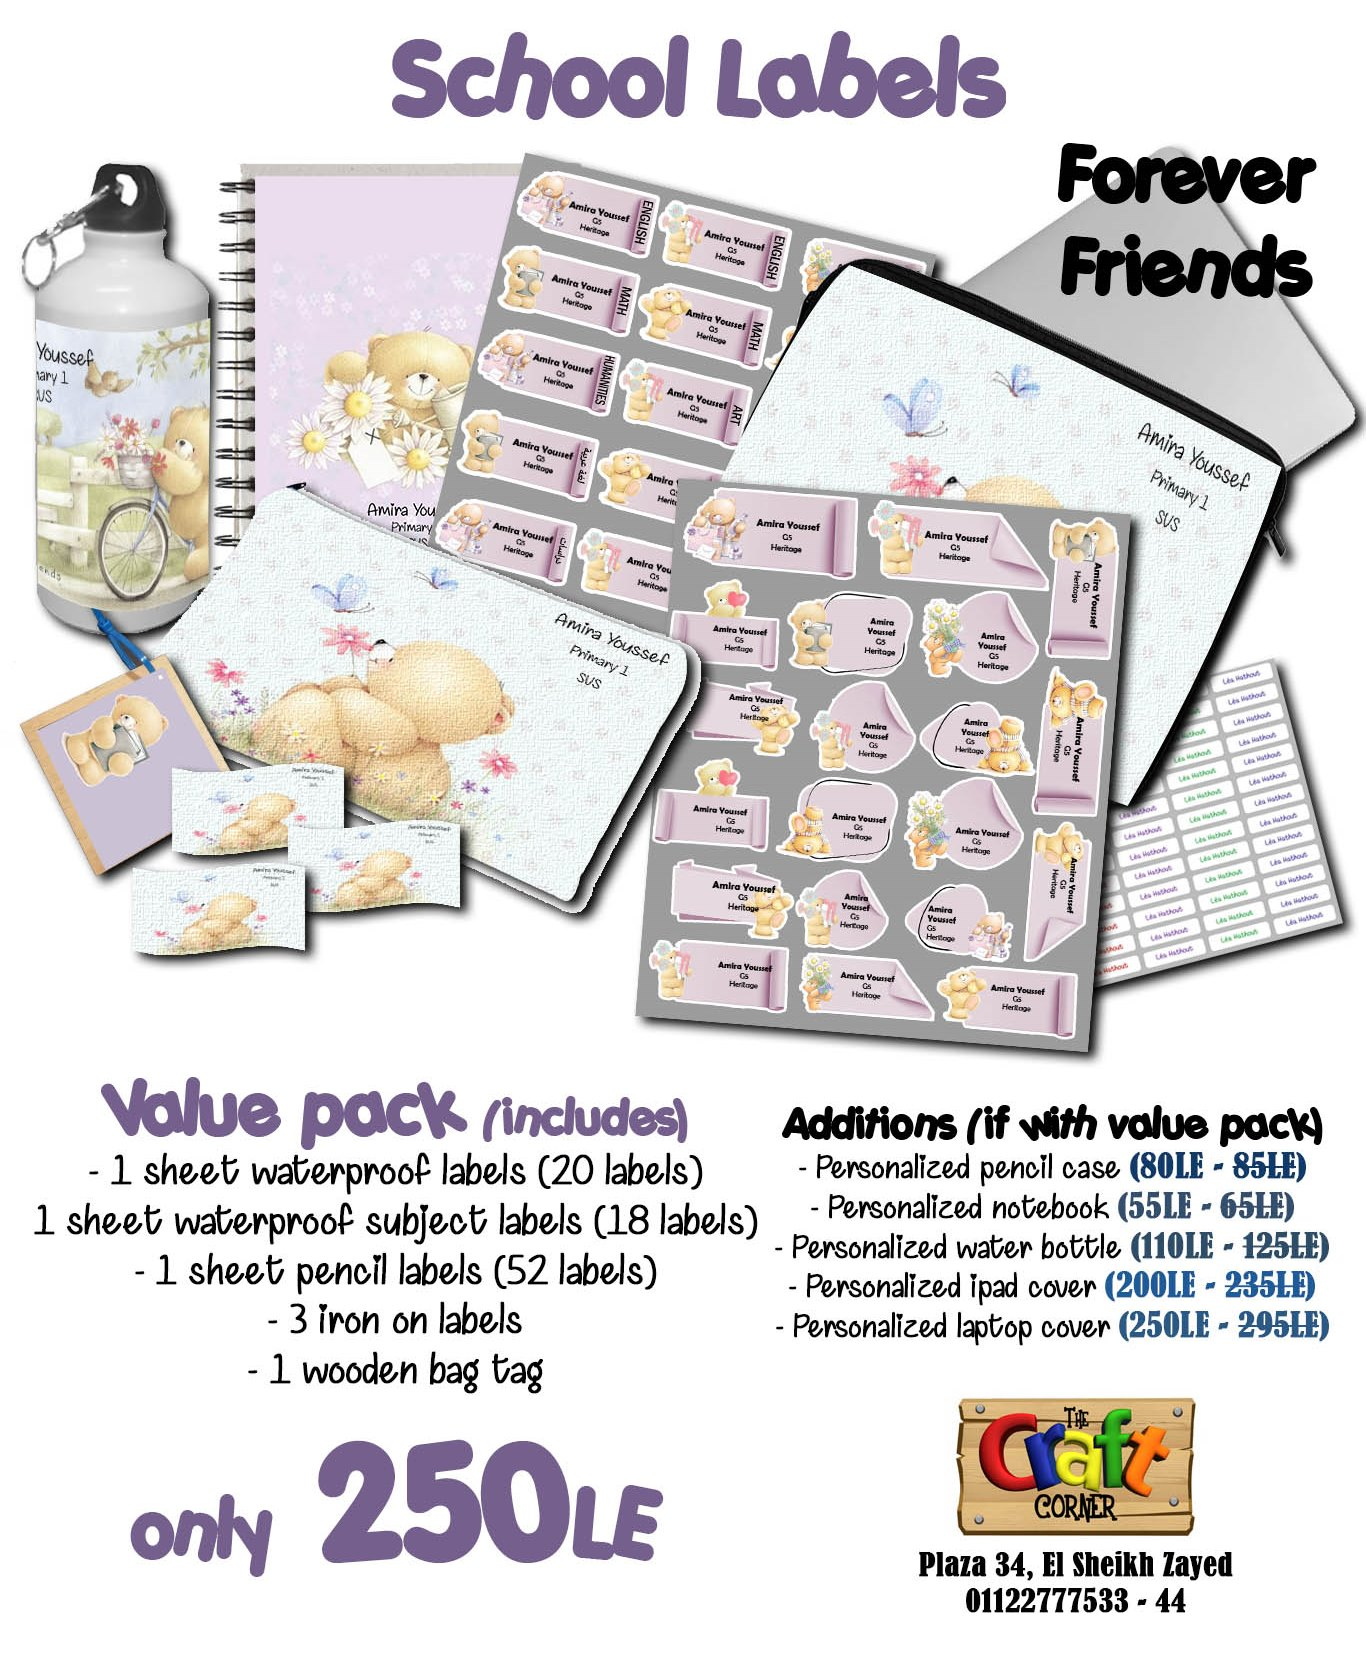 forever friends ad